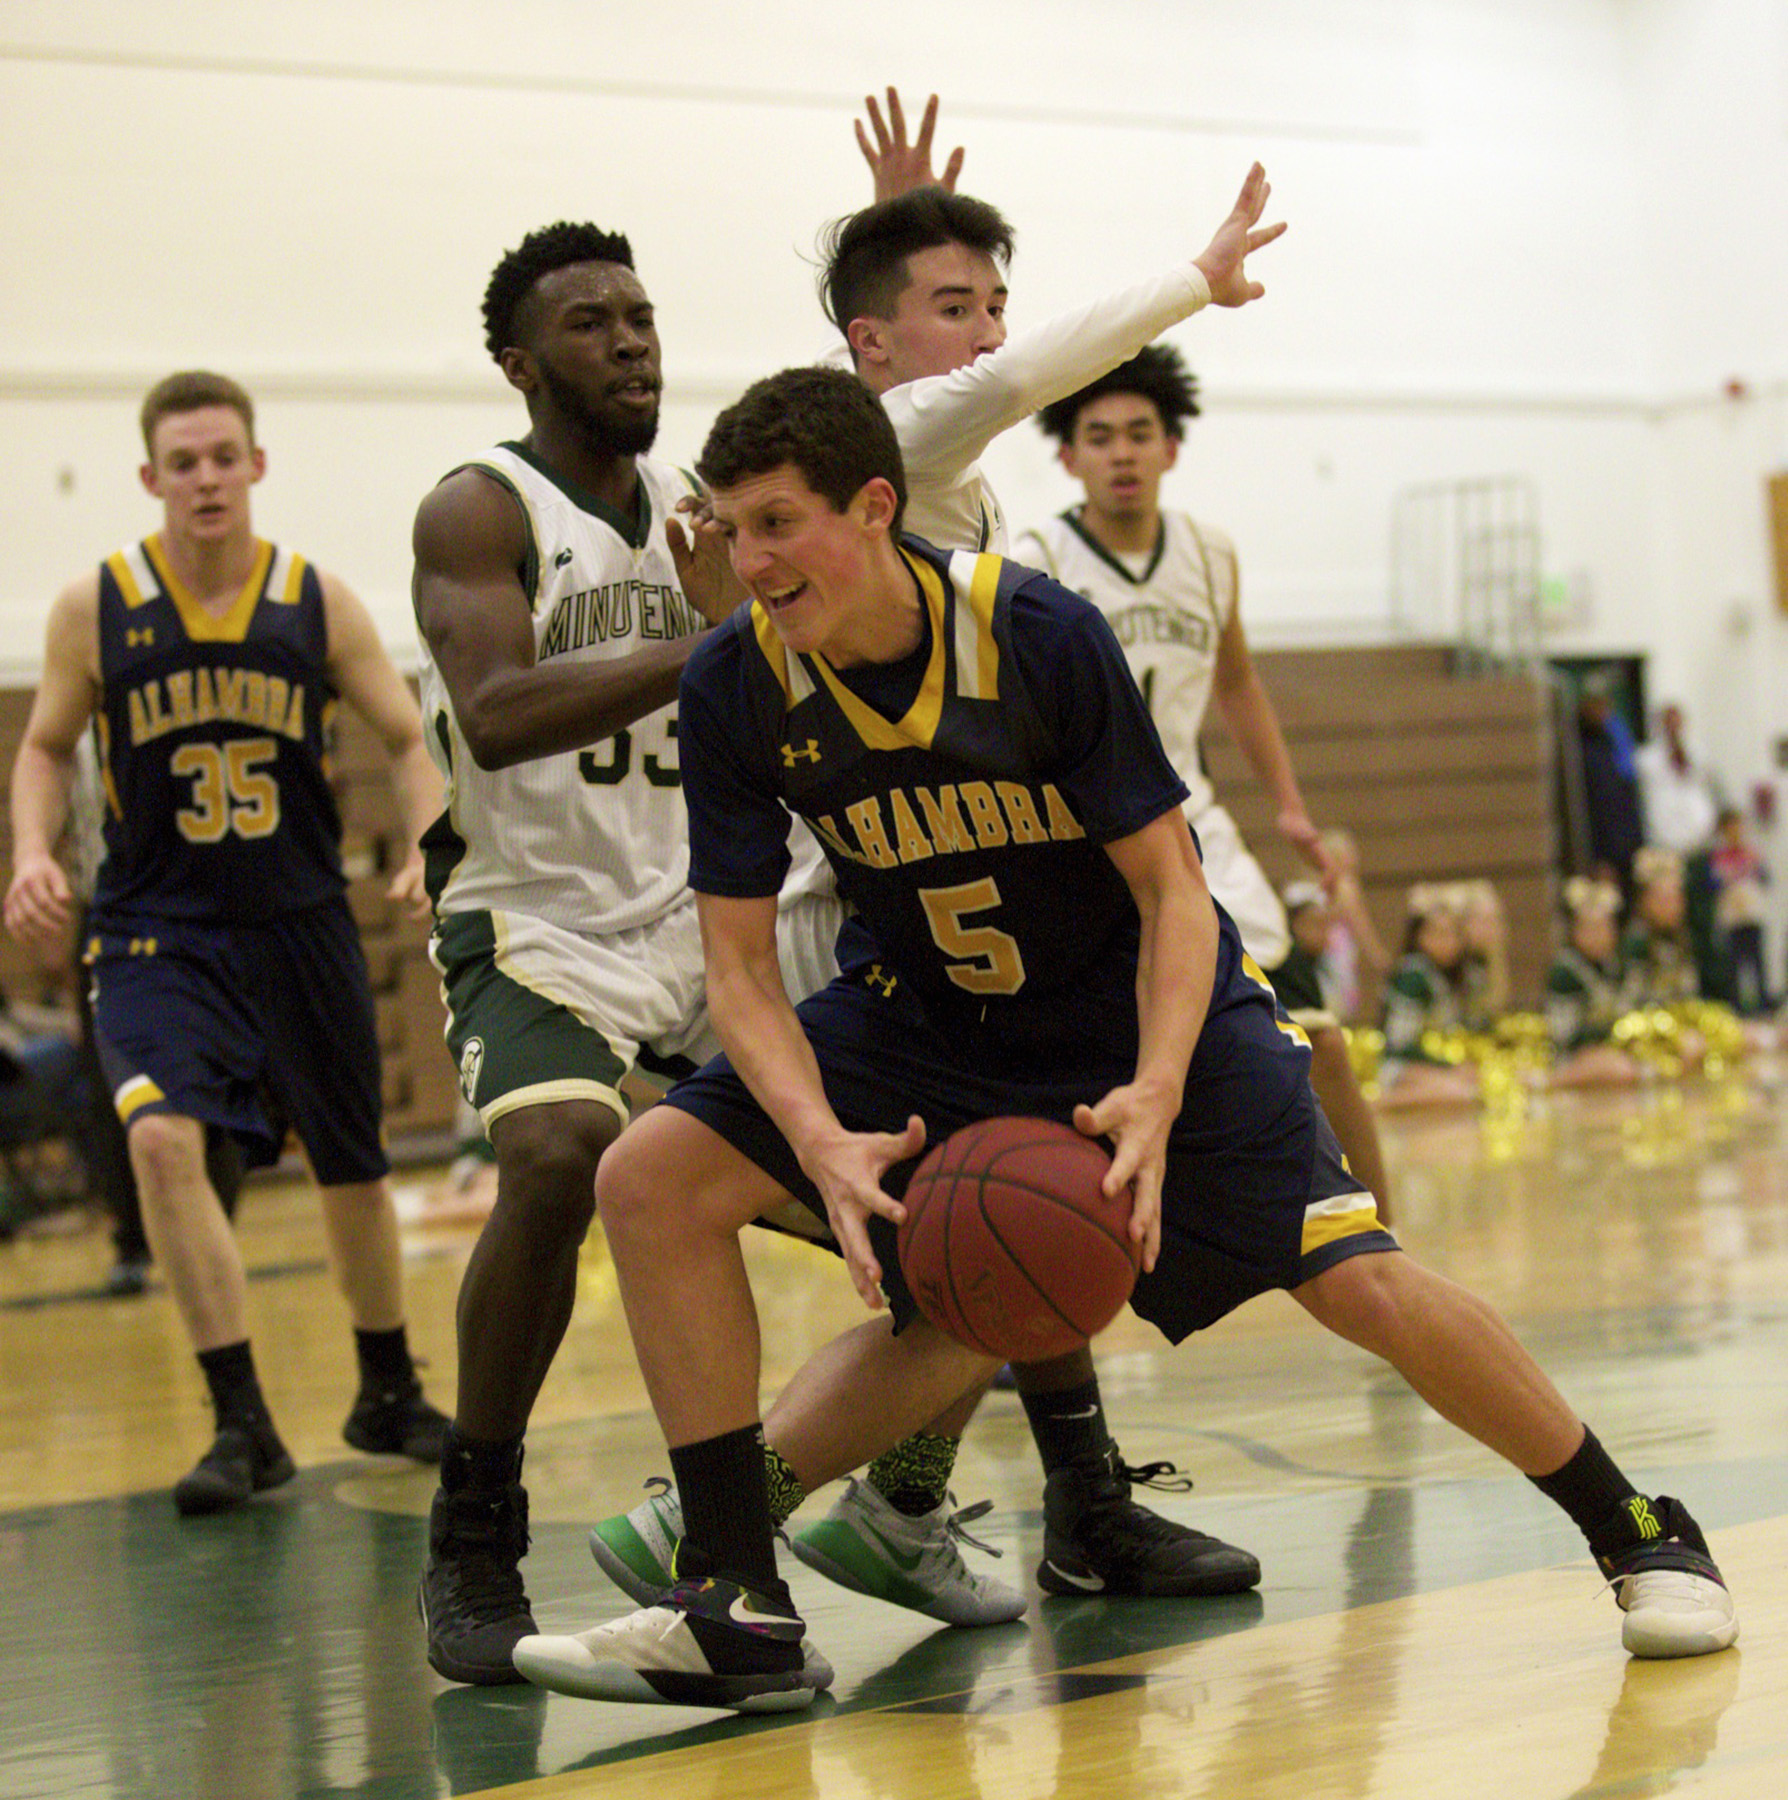 Alhambra sophomore Brody Eglite (5) pulls down a rebound and looks to get to the basket in the Bulldogs' 62-46 loss to the Concord Minutemen on Jan. 20, 2017. (MARK FIERNER / Martinez Tribune)